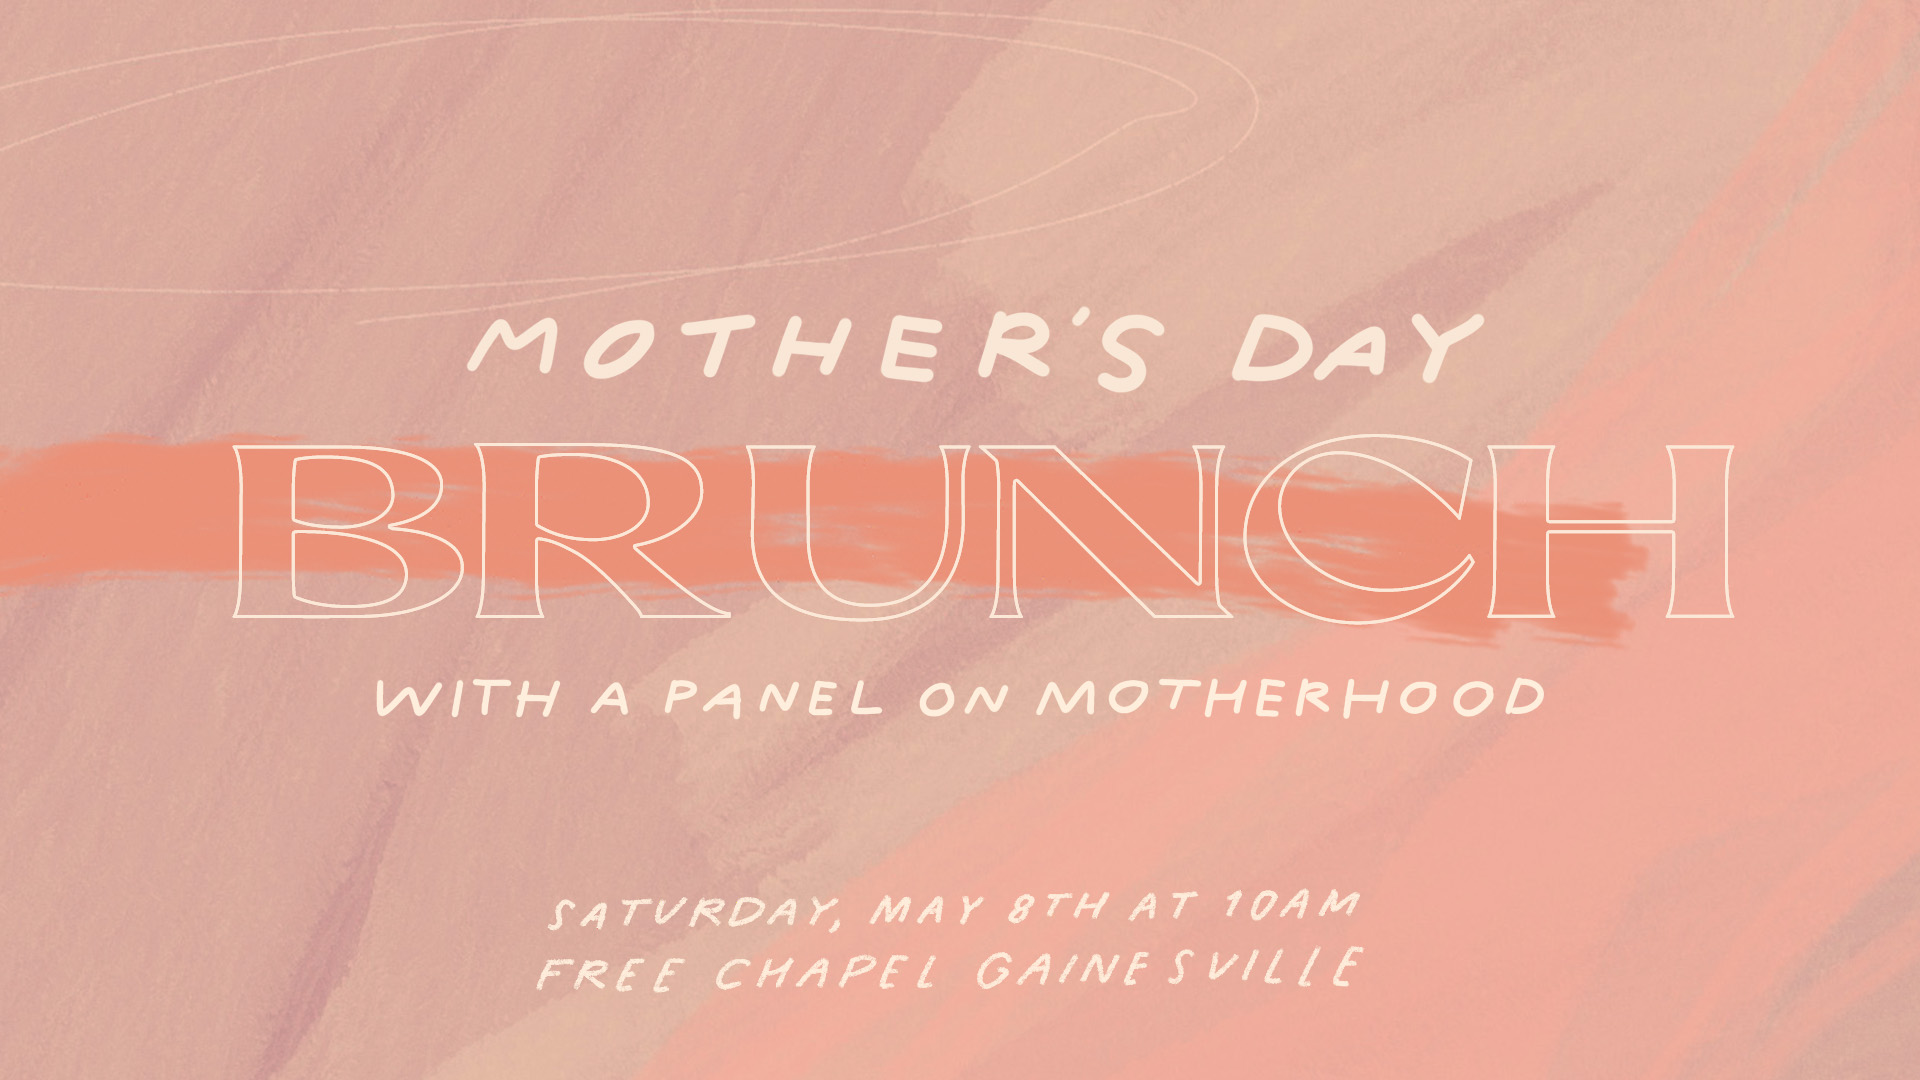 Mother's Day Brunch at the Cumming campus